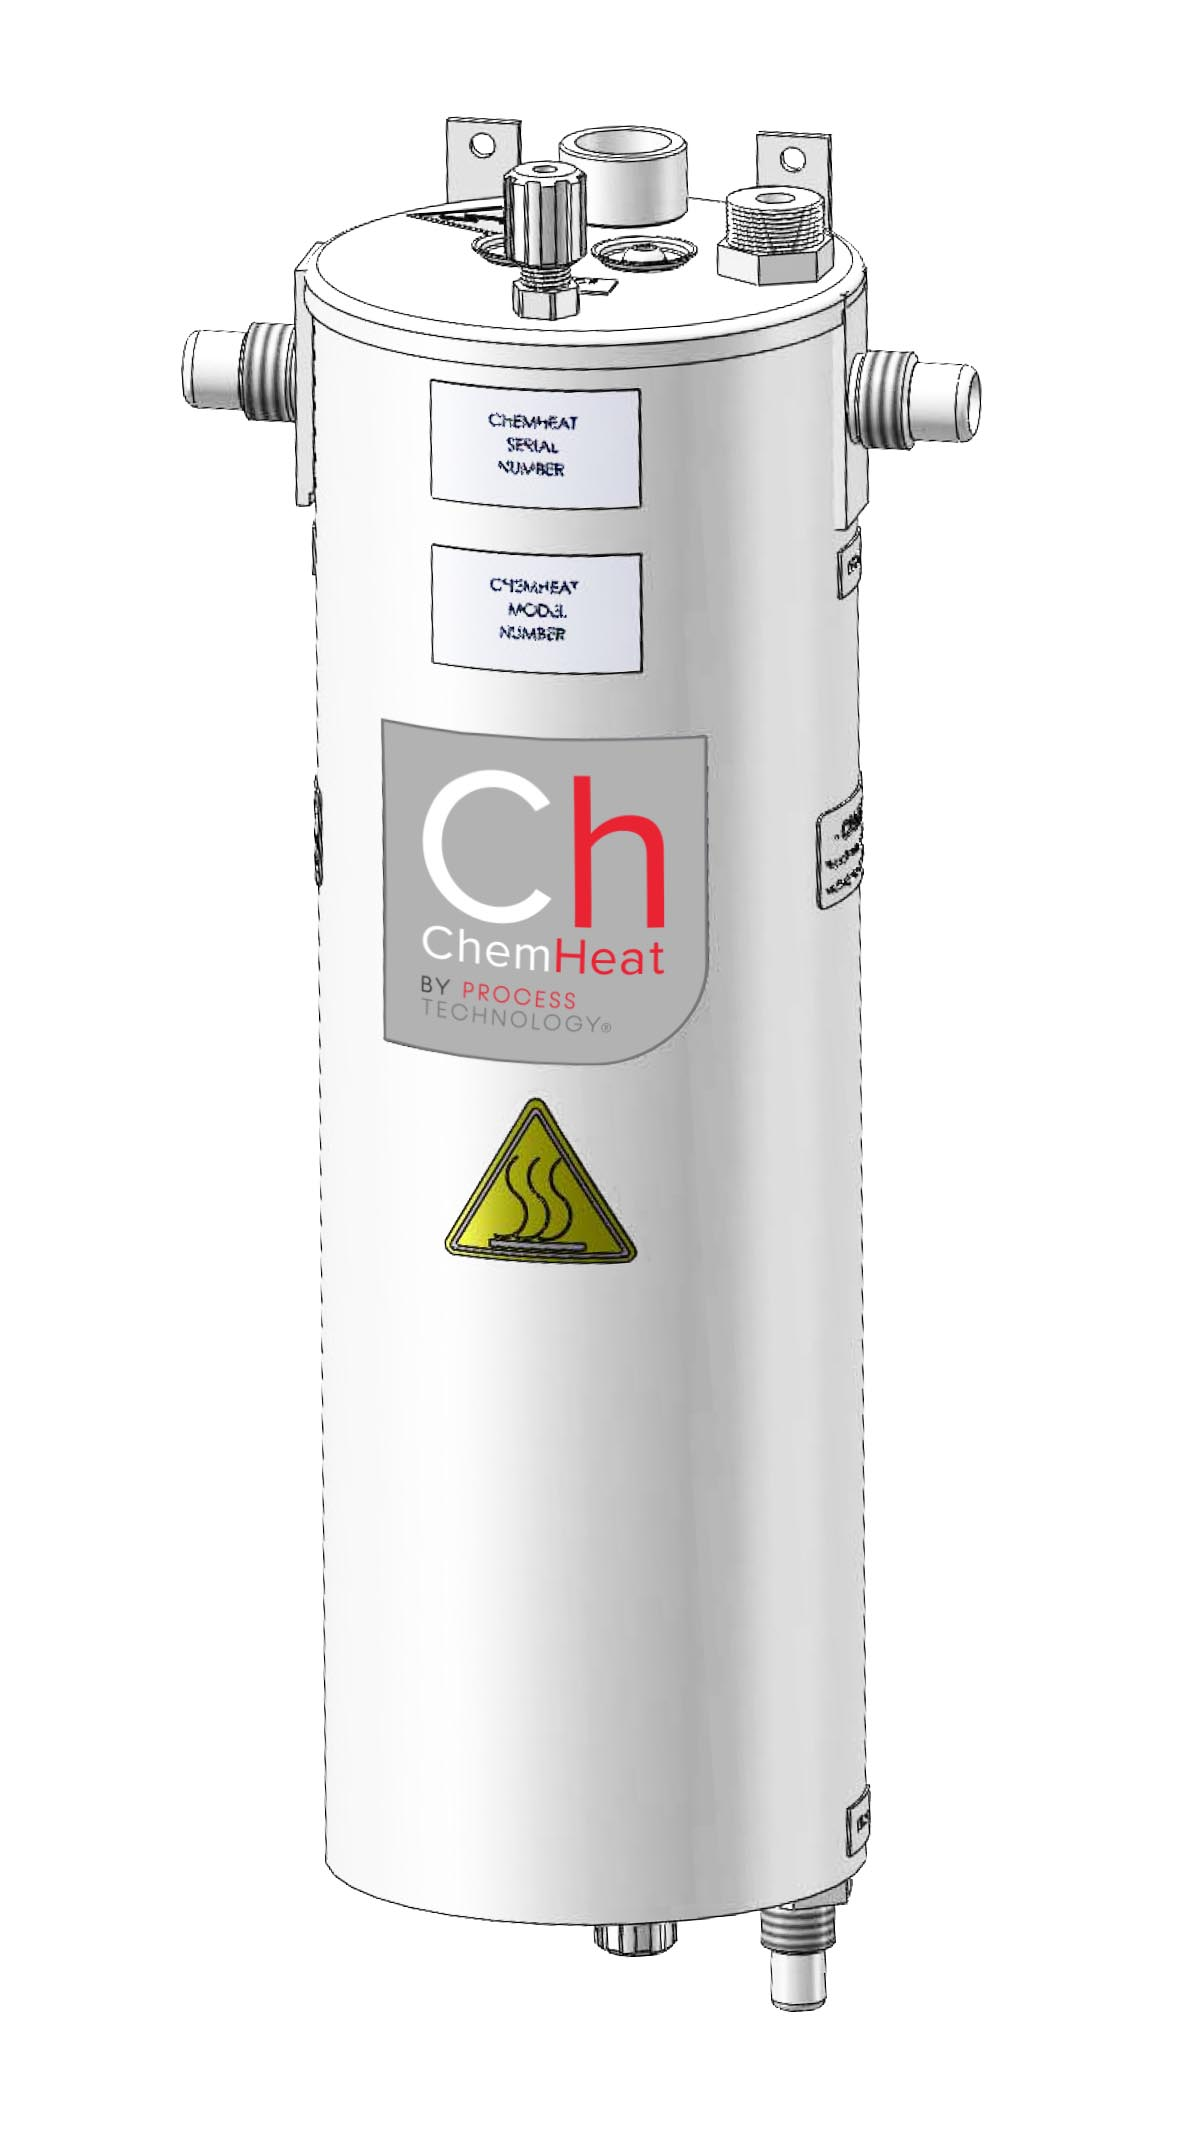 Process Technology Launches Compact In-line Chemical Heater